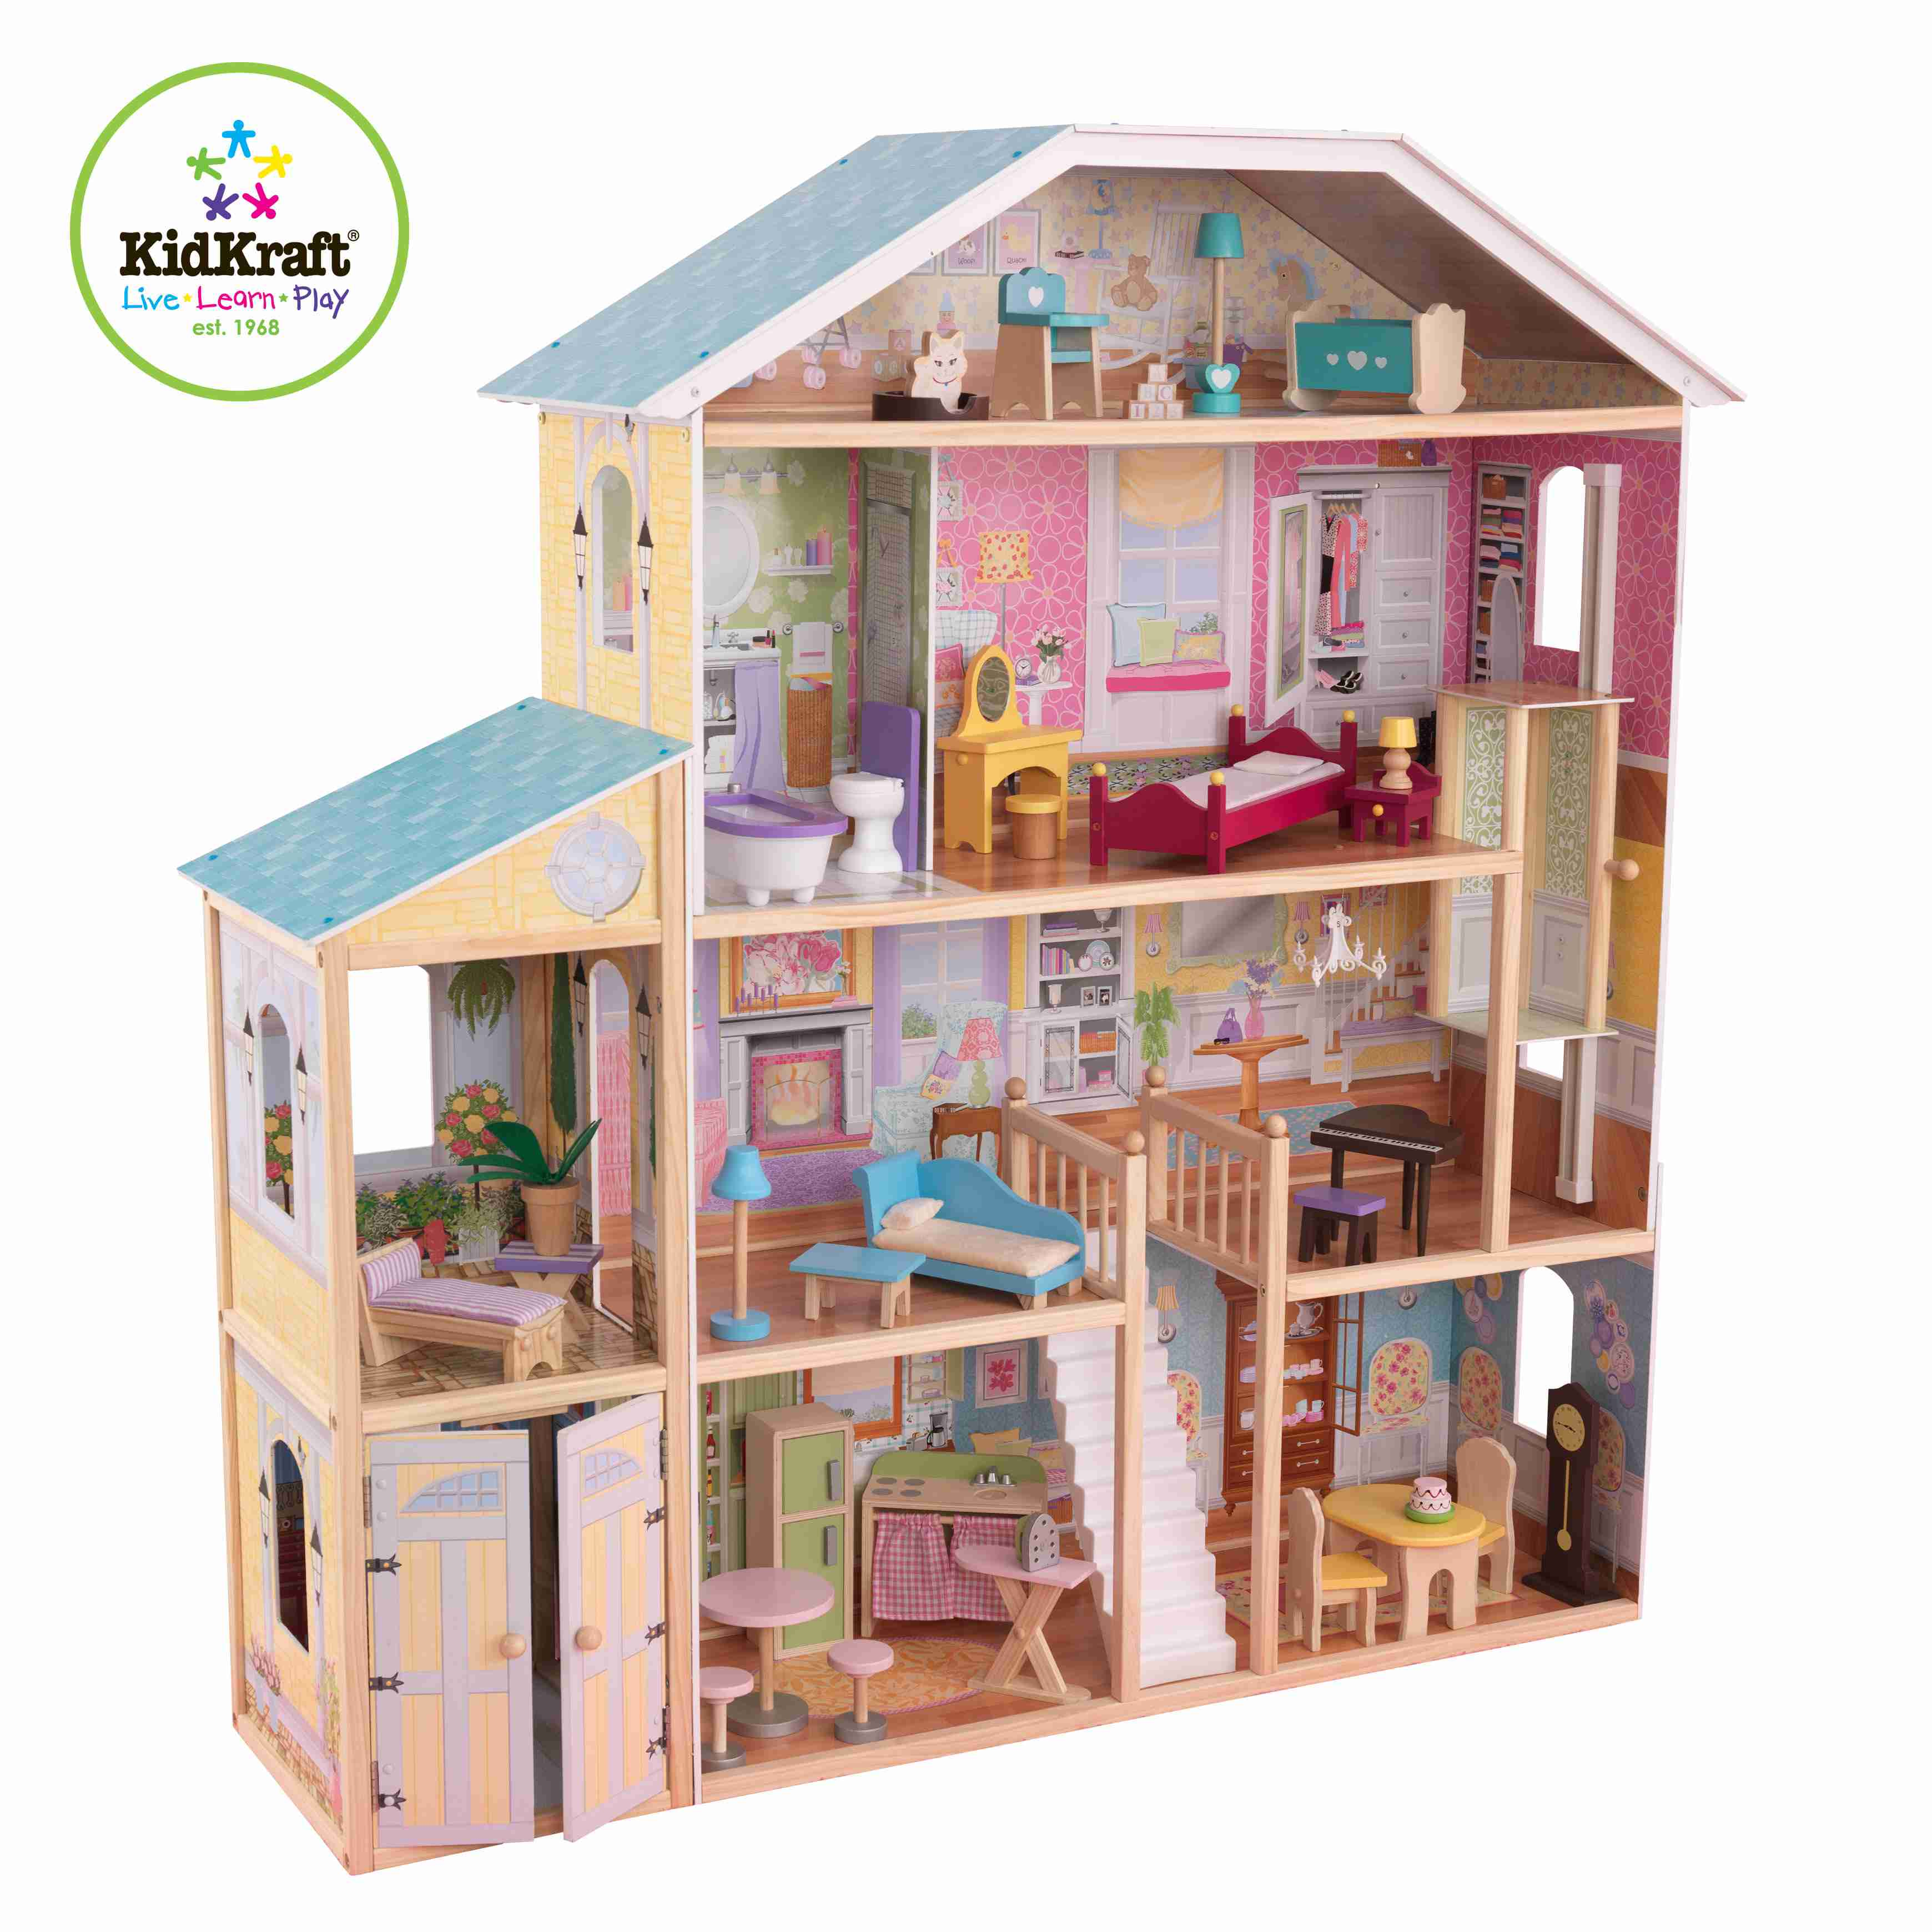 Kidkraft Magestic Mansion Doll's House